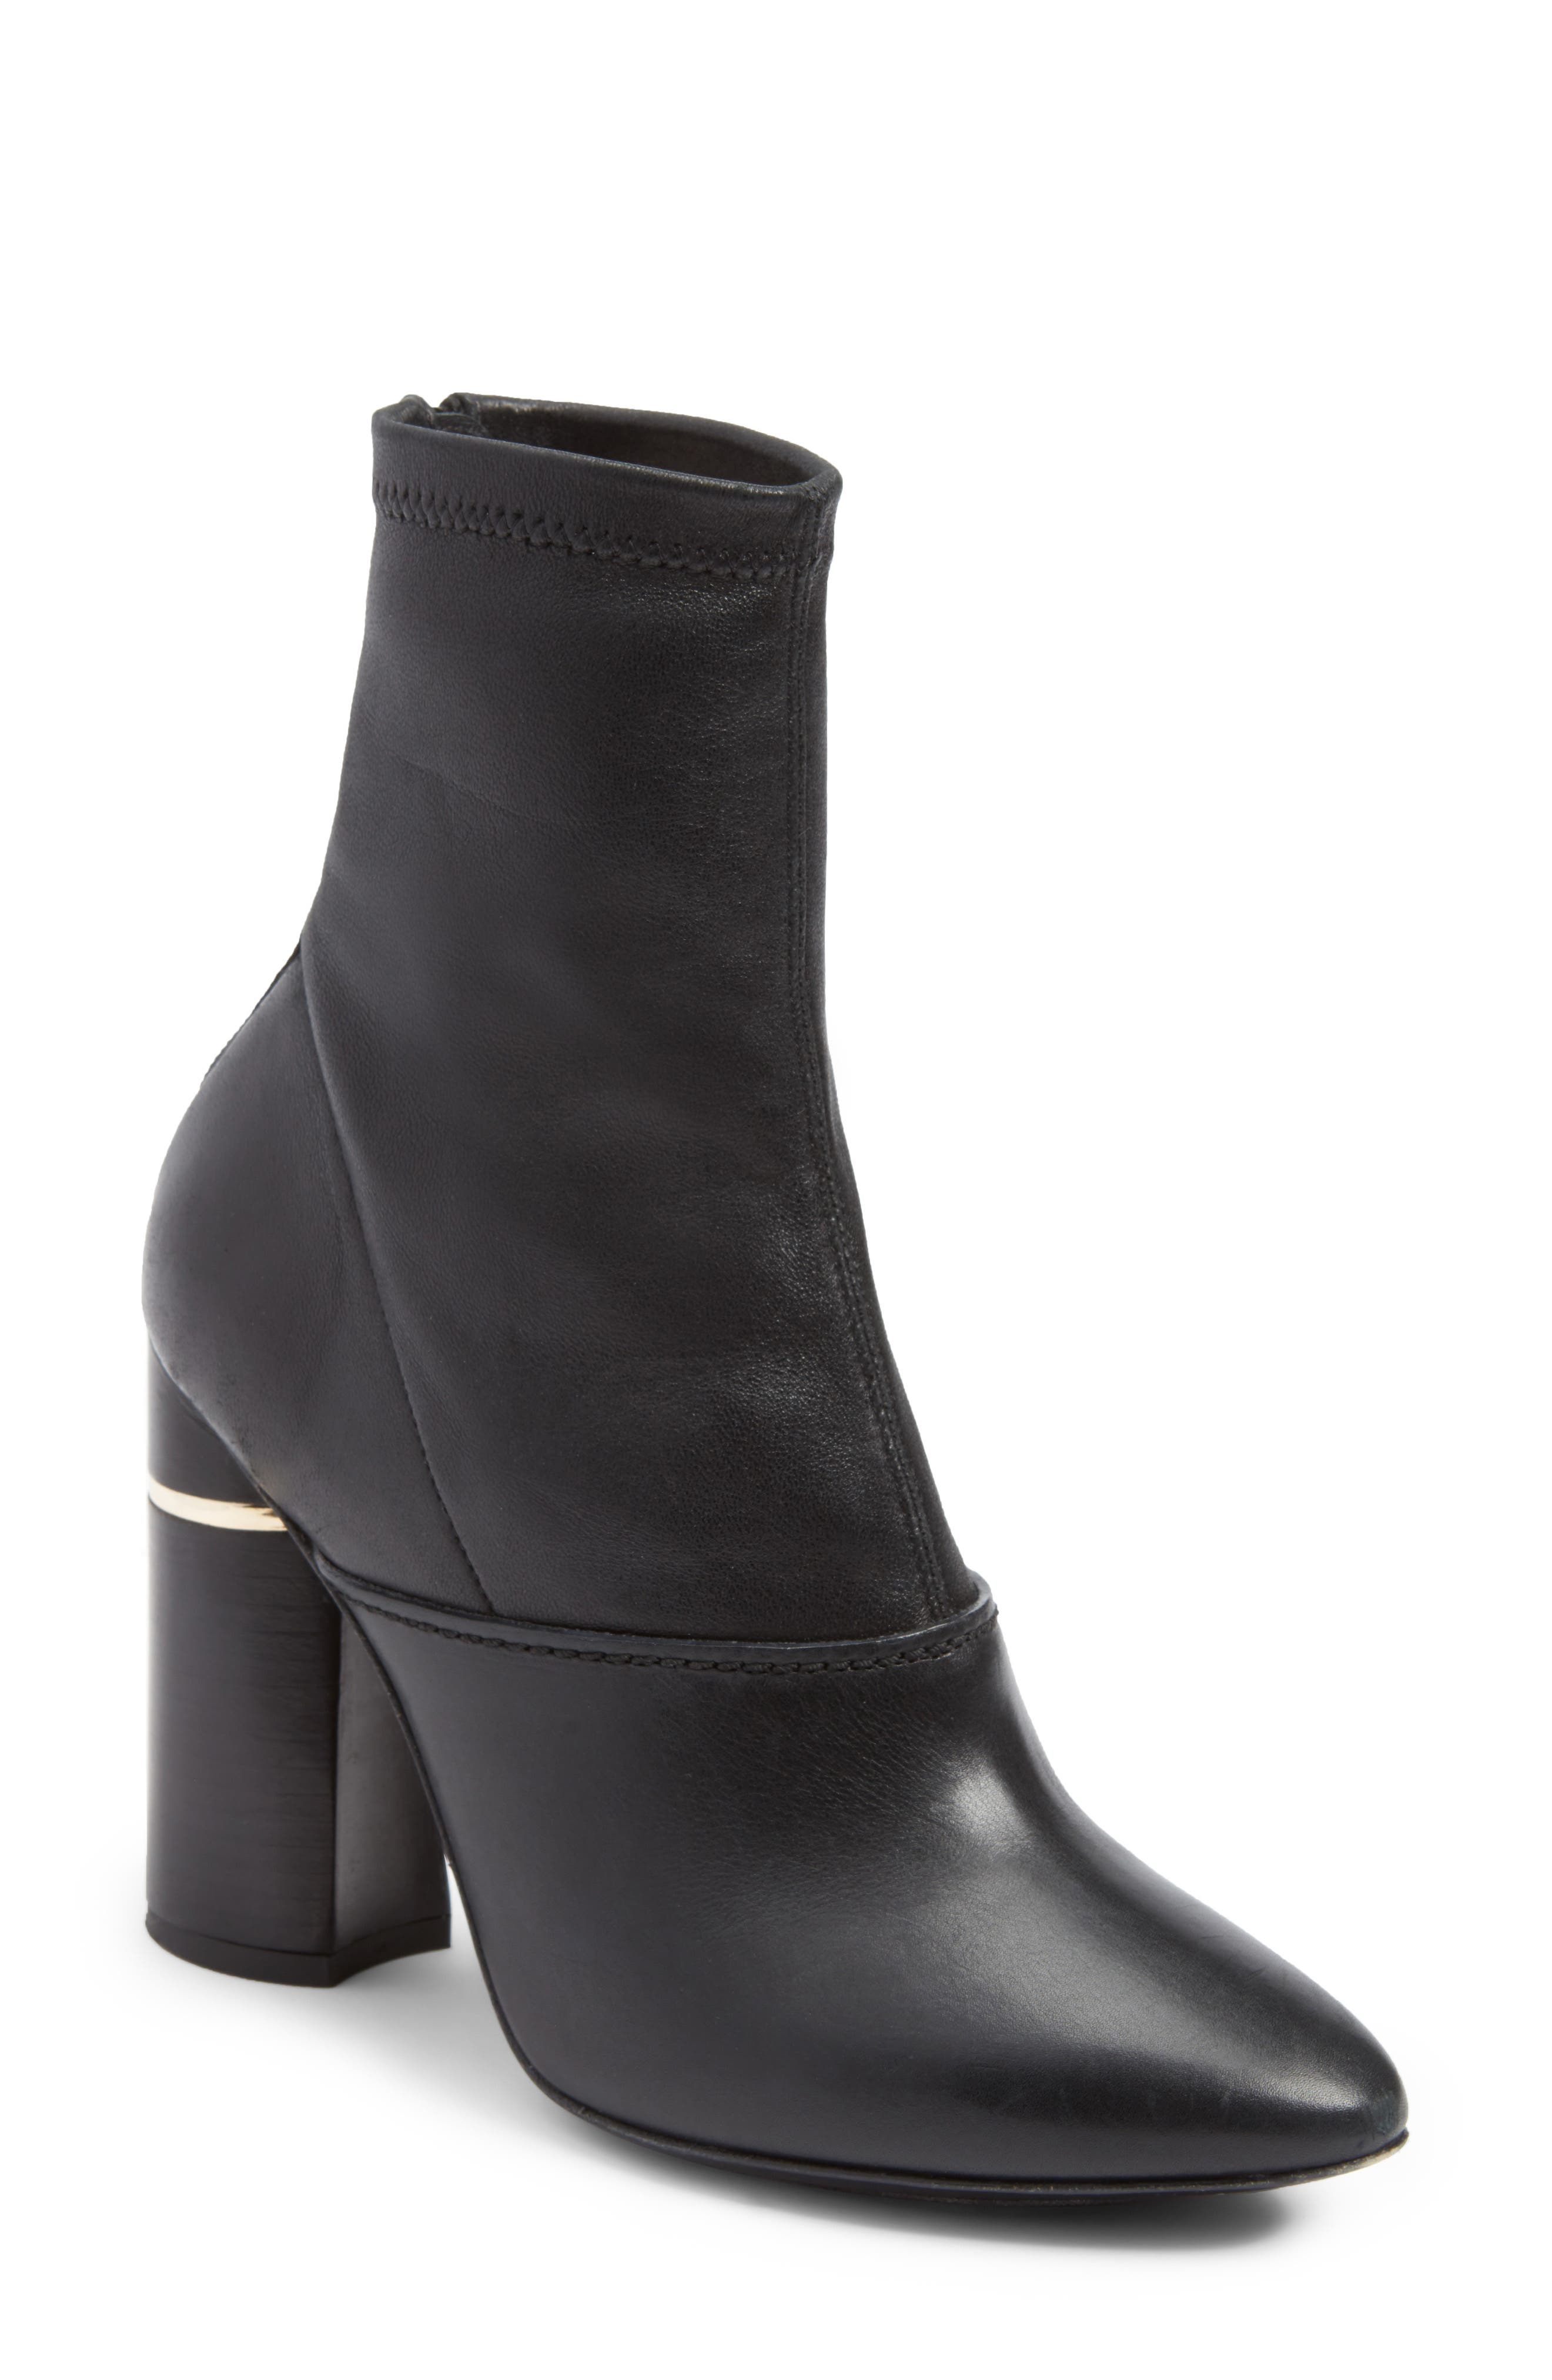 3.1 Phillip Lim Kyoto Leather Bootie (Women)